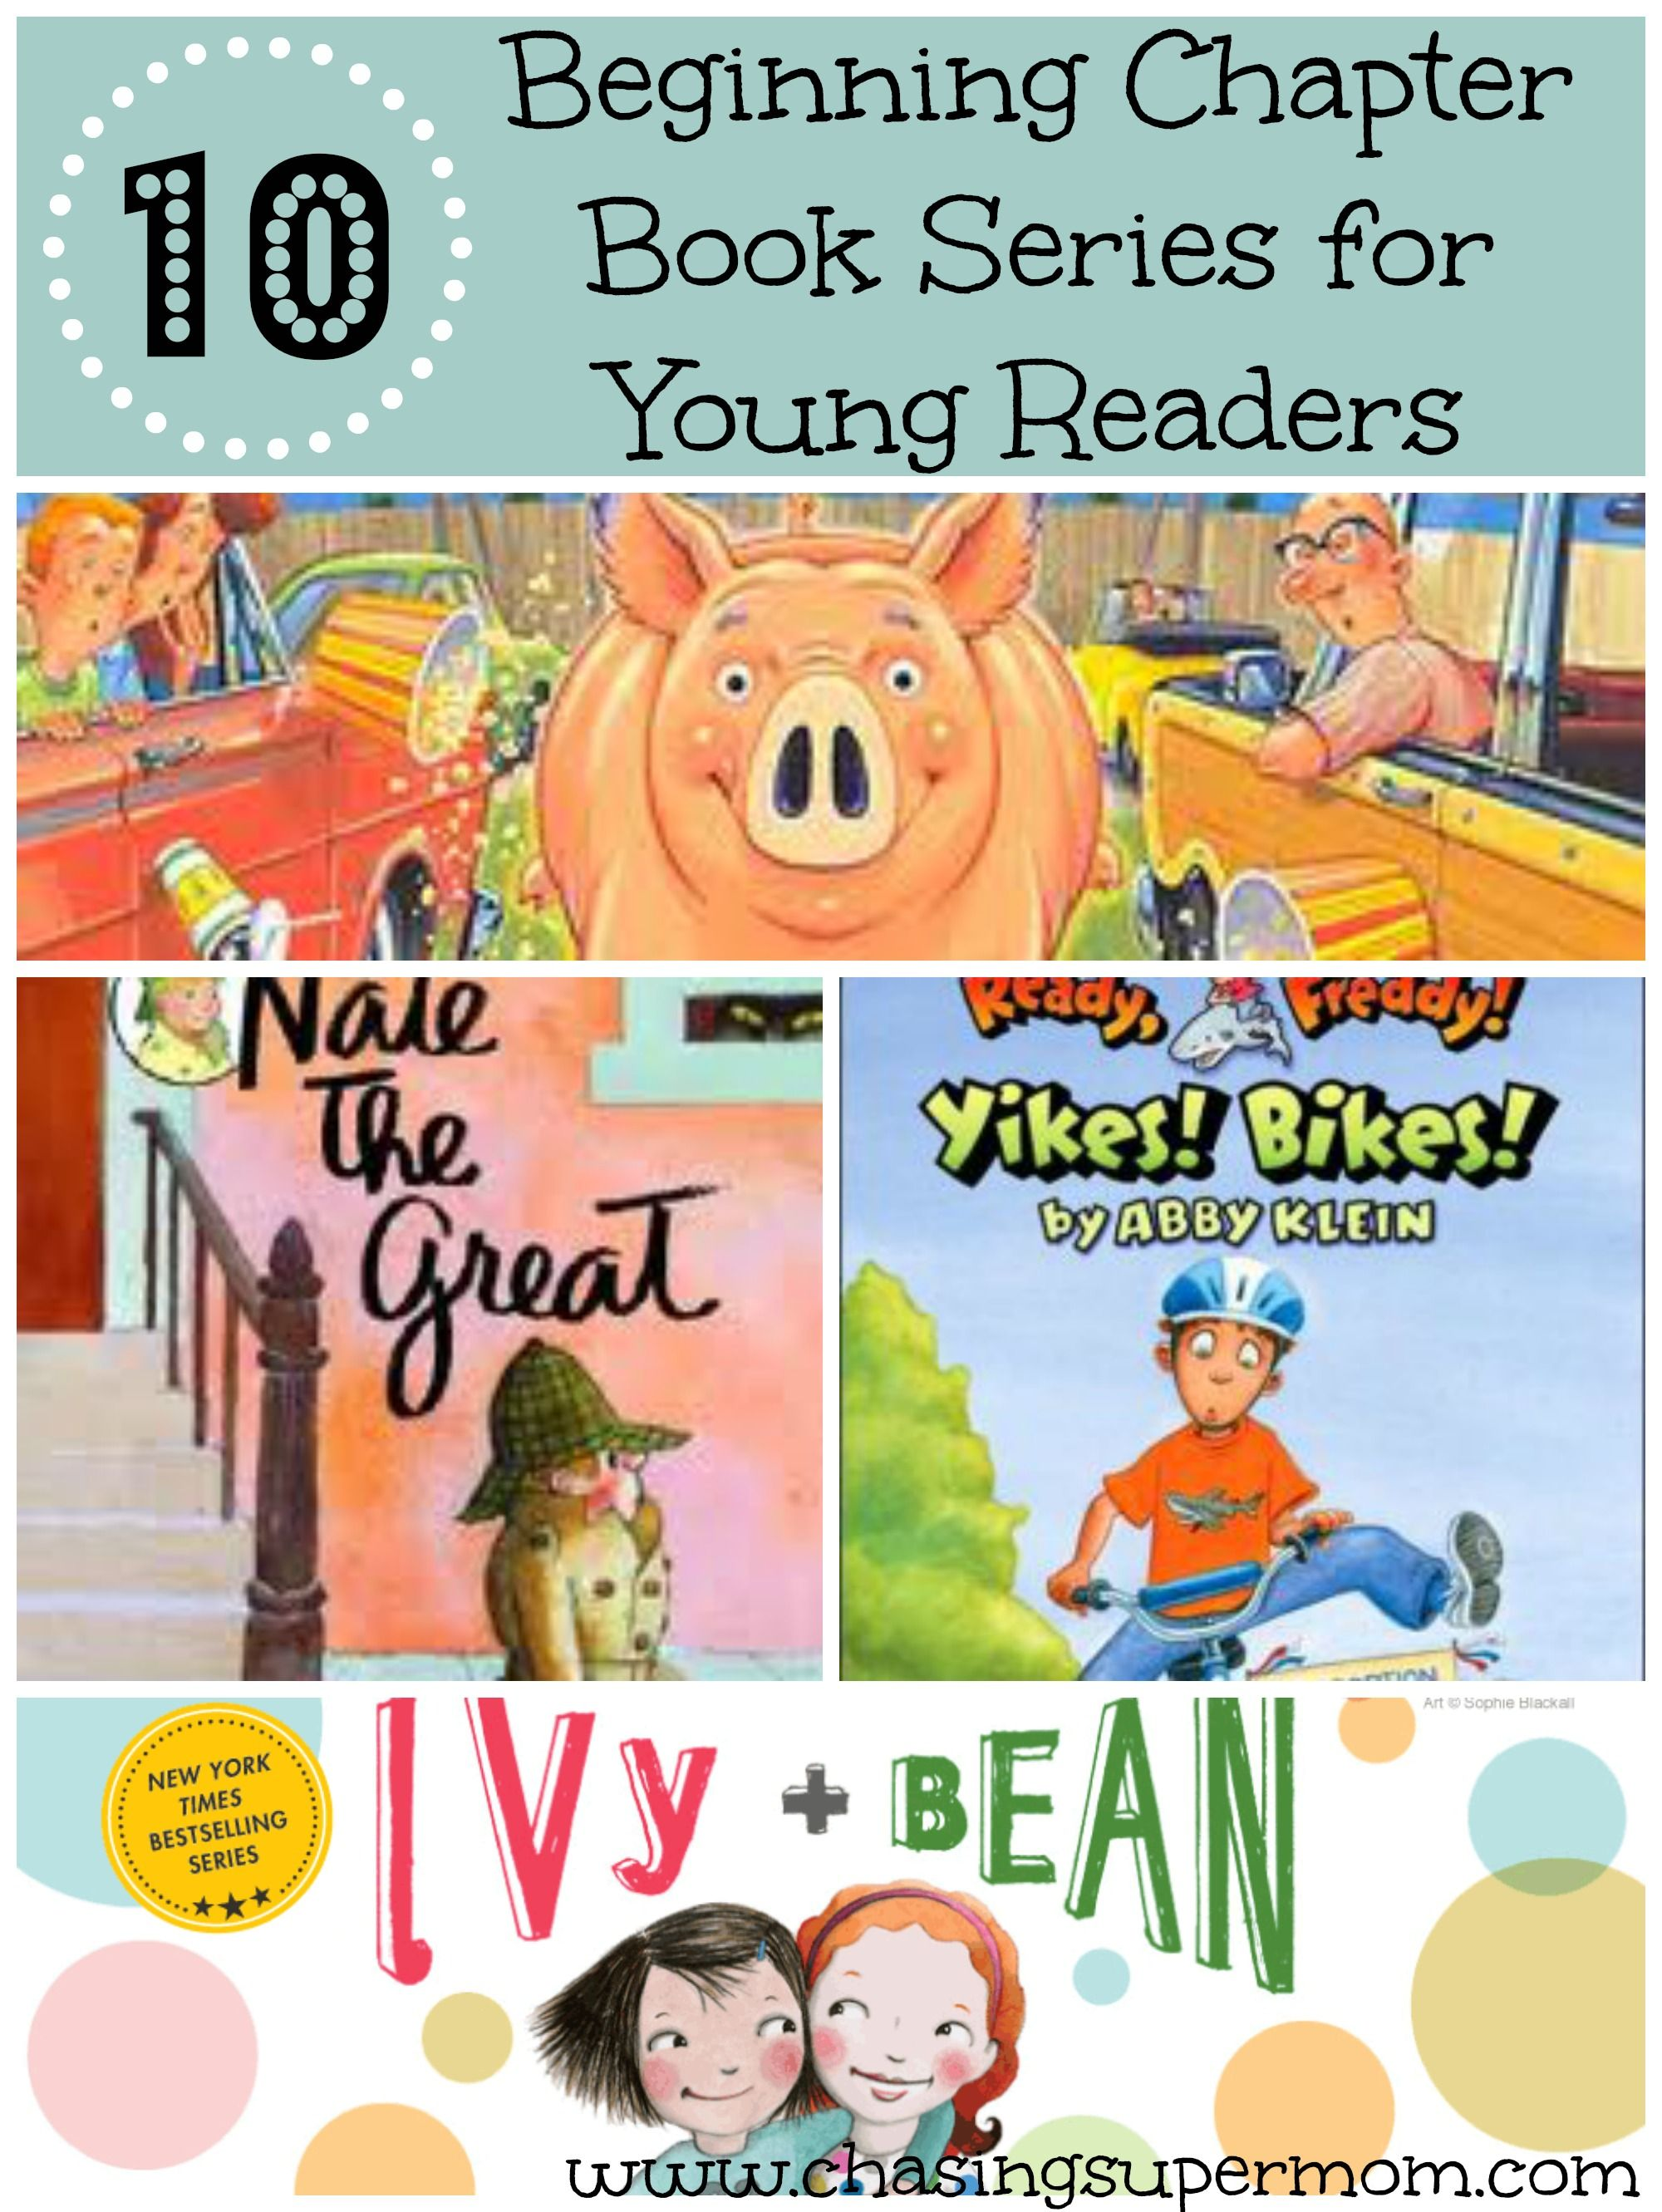 10 great beginning chapter book series for young readers